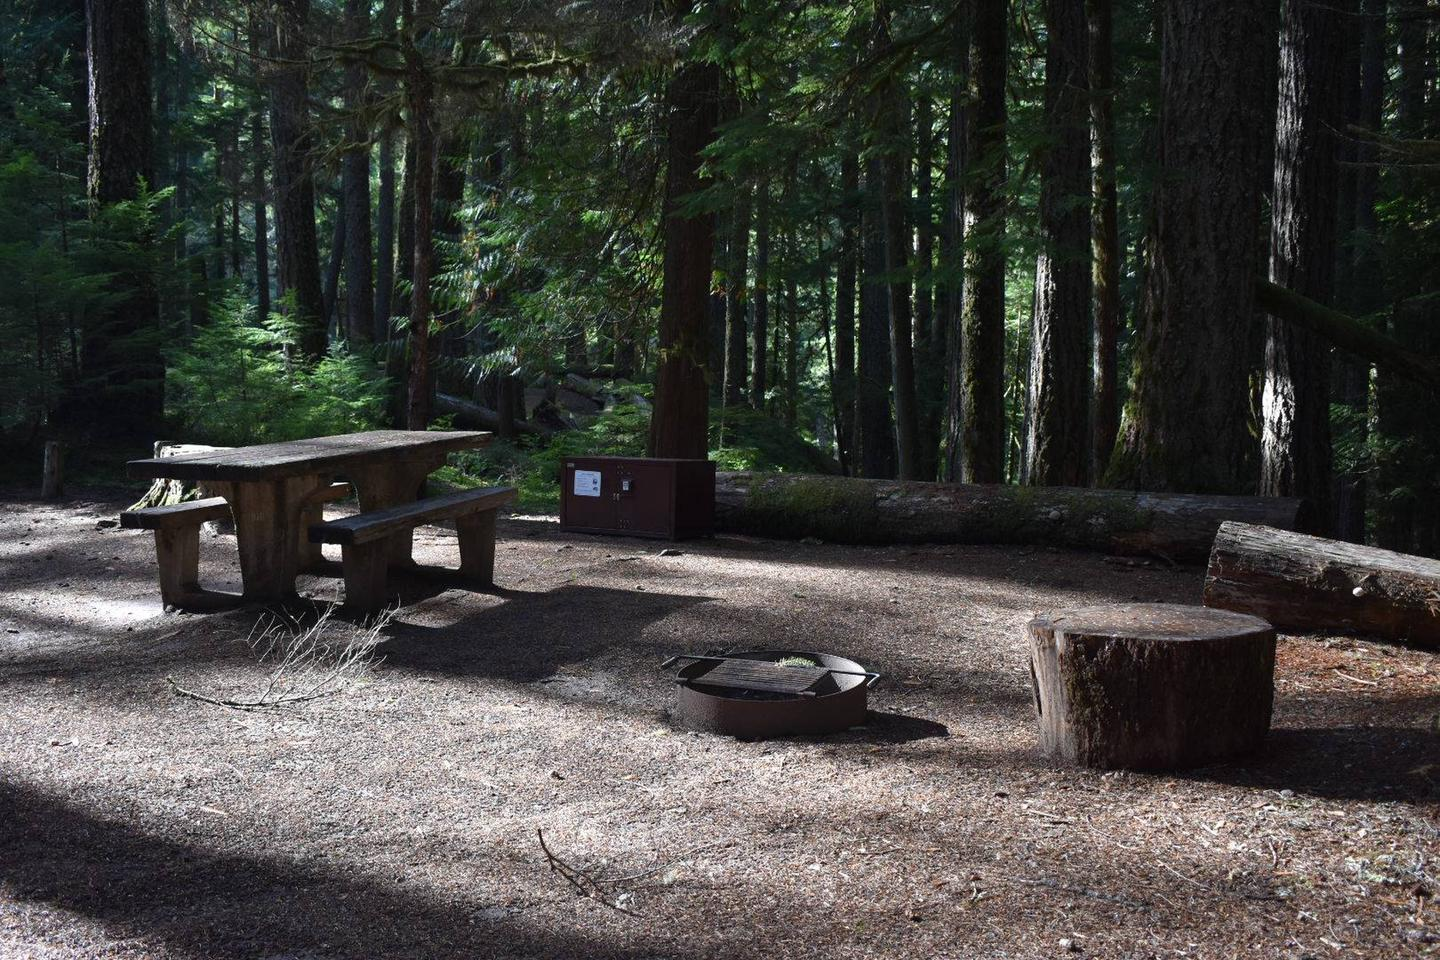 Ohanapecosh Campground - Site D010 AmenitiesCampers are provided with a picnic table, food storage box, and fire pit.